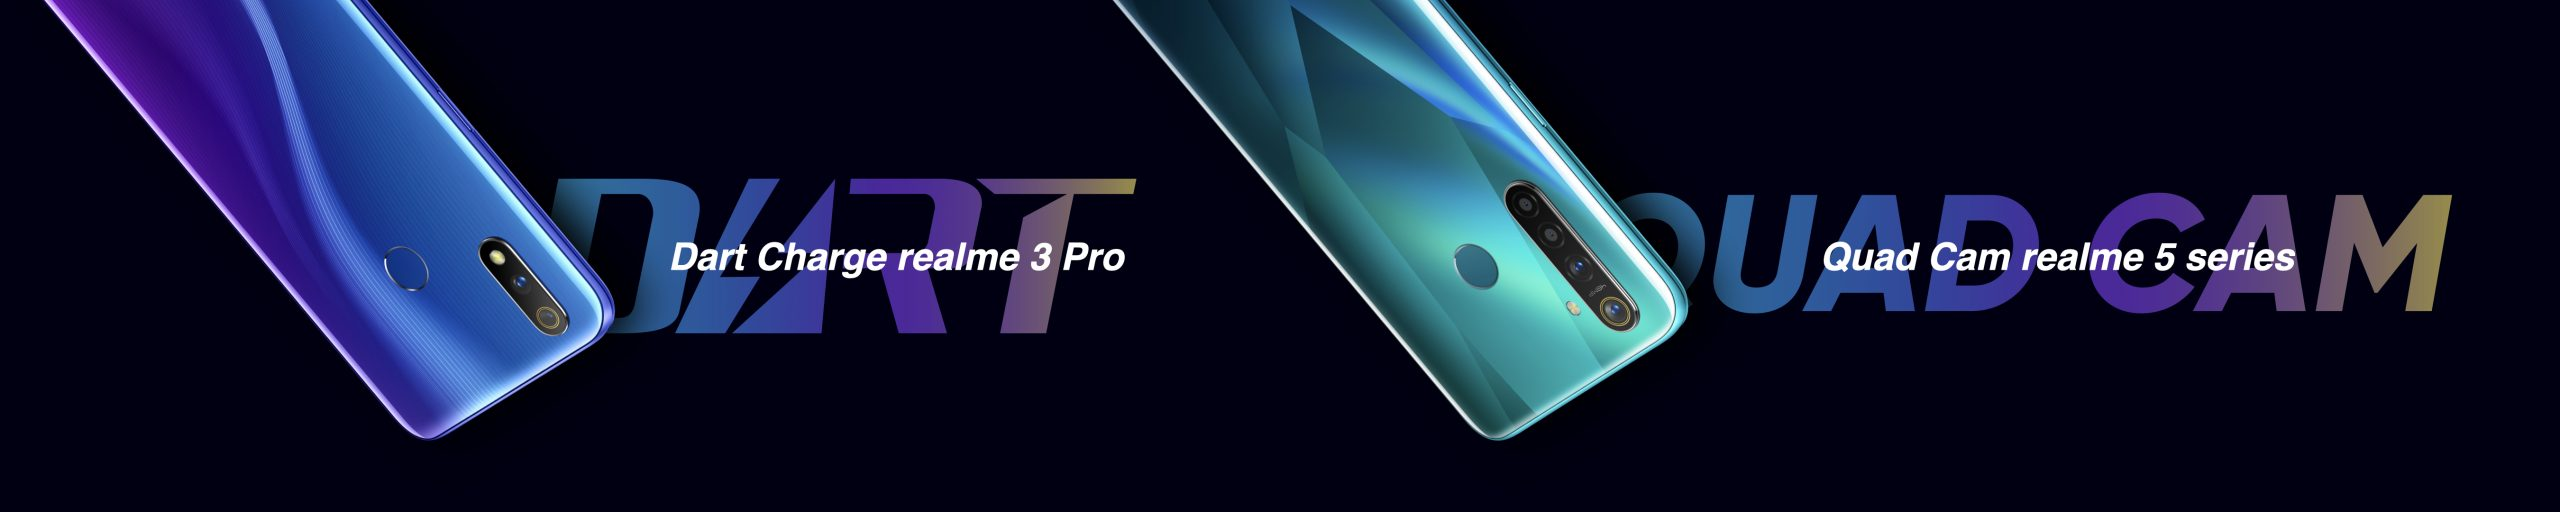 realme to Open Infinite Wonders with the all new realme 8 Series